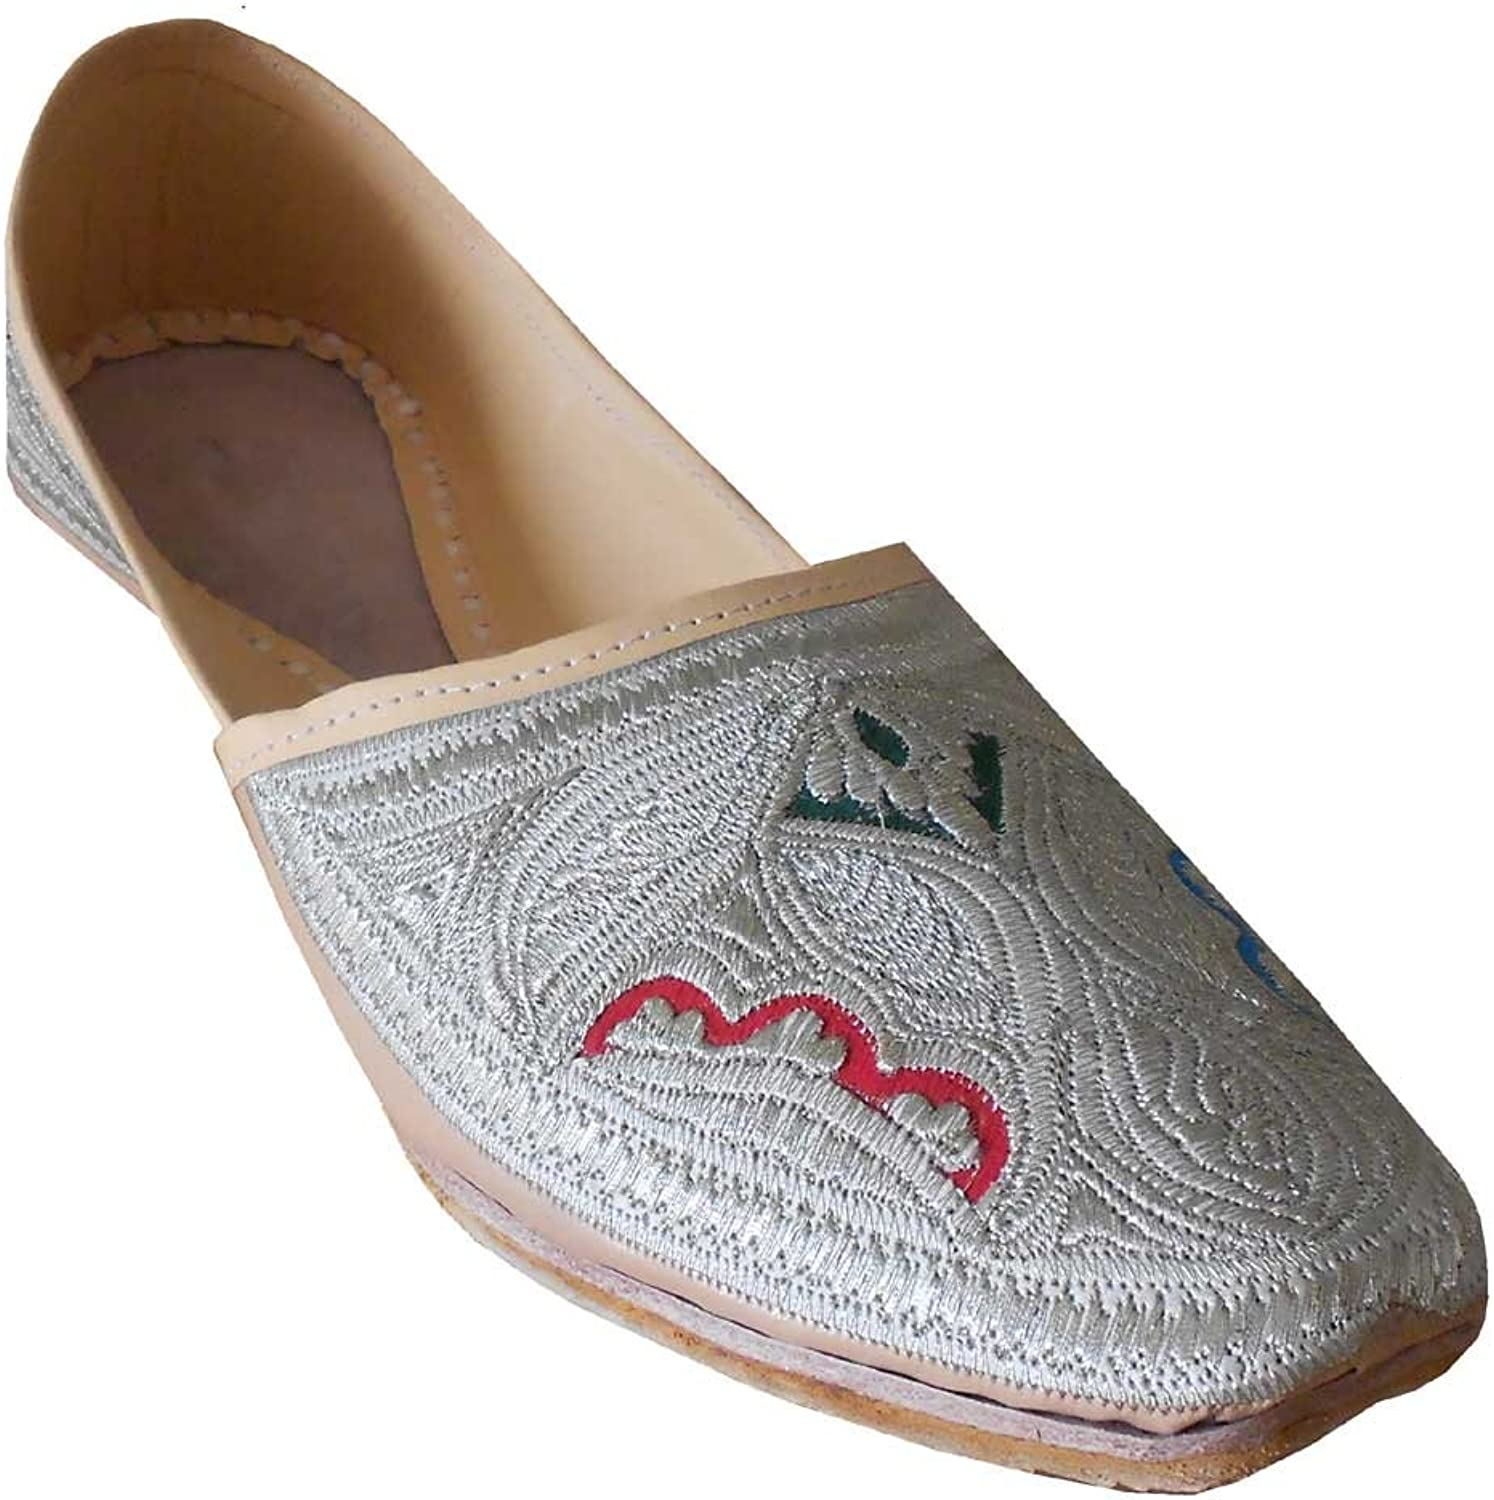 Kalra Creations Men's Traditional Indian Faux Leather with Embroidery Party shoes